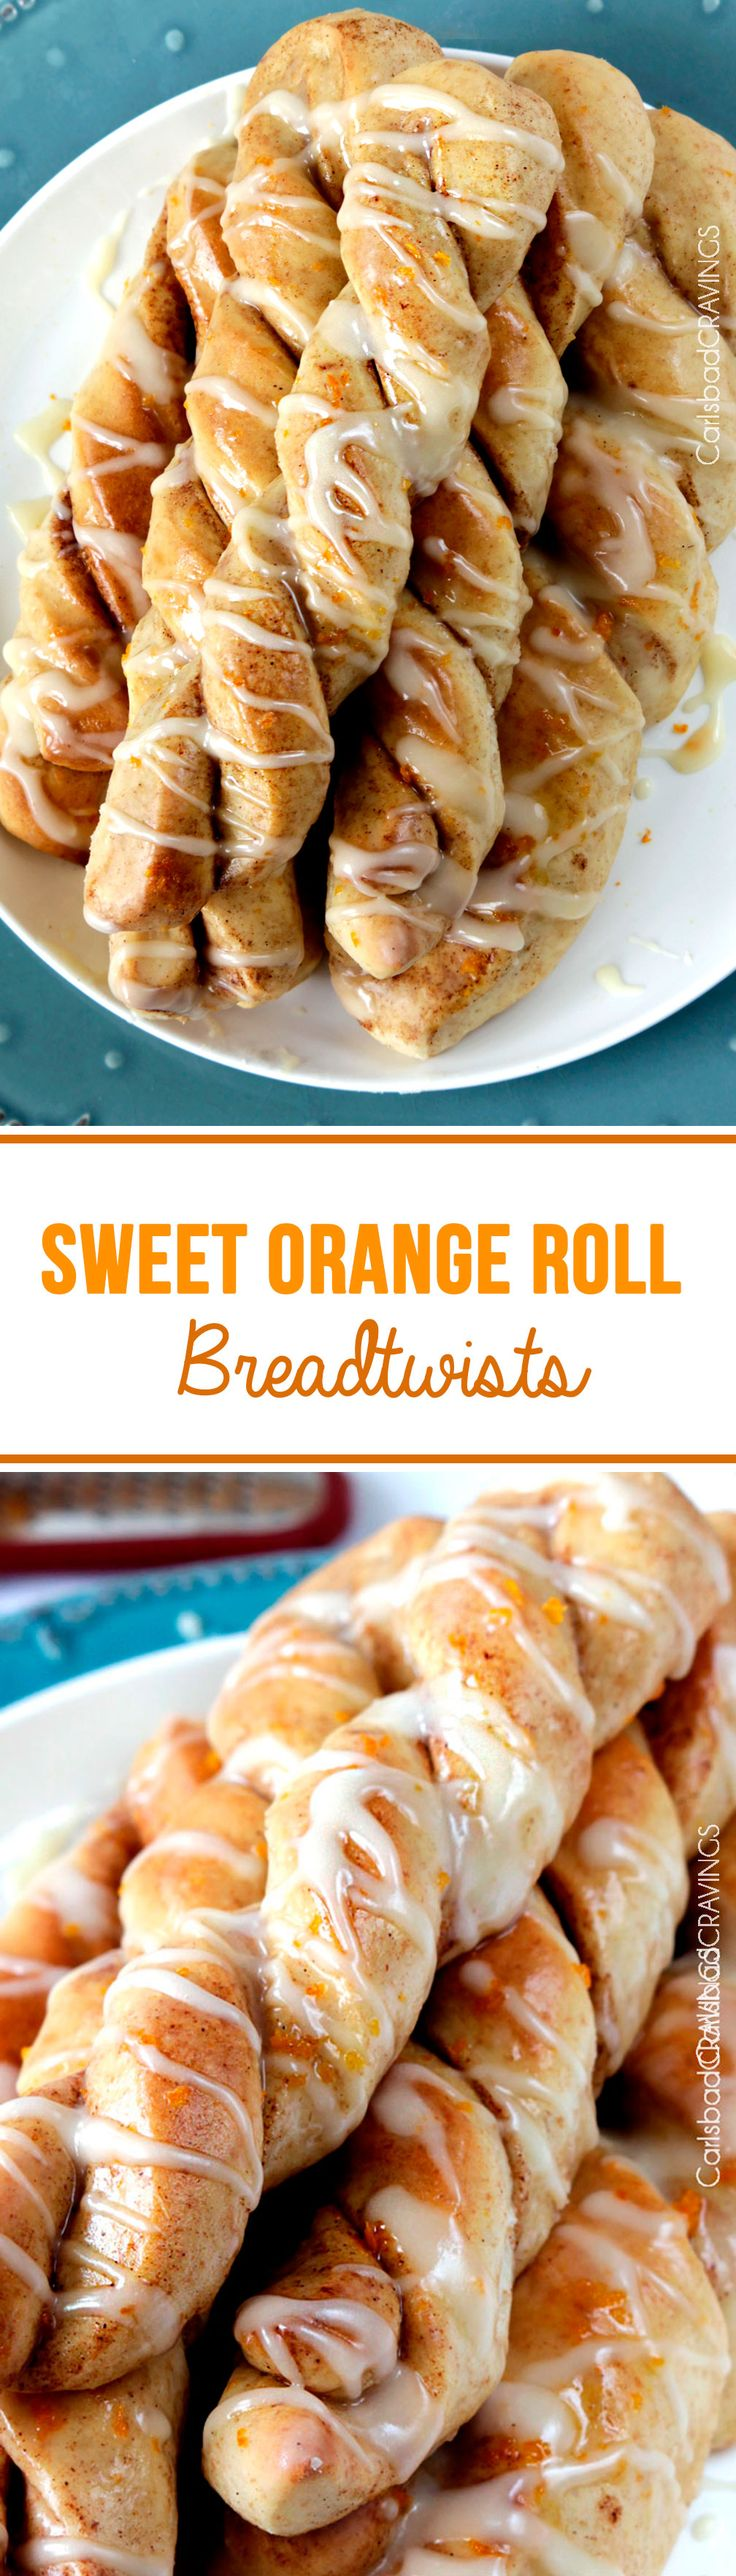 Sweet Orange Roll BreadTwists | only 25 minute rise and SO addictive and easy! all of the soft and fluffy cinnamon sweet orange bliss of a traditional soft orange roll BUT without the wait! #orangerolls #breadsticks #cinnamonrolls #rolls